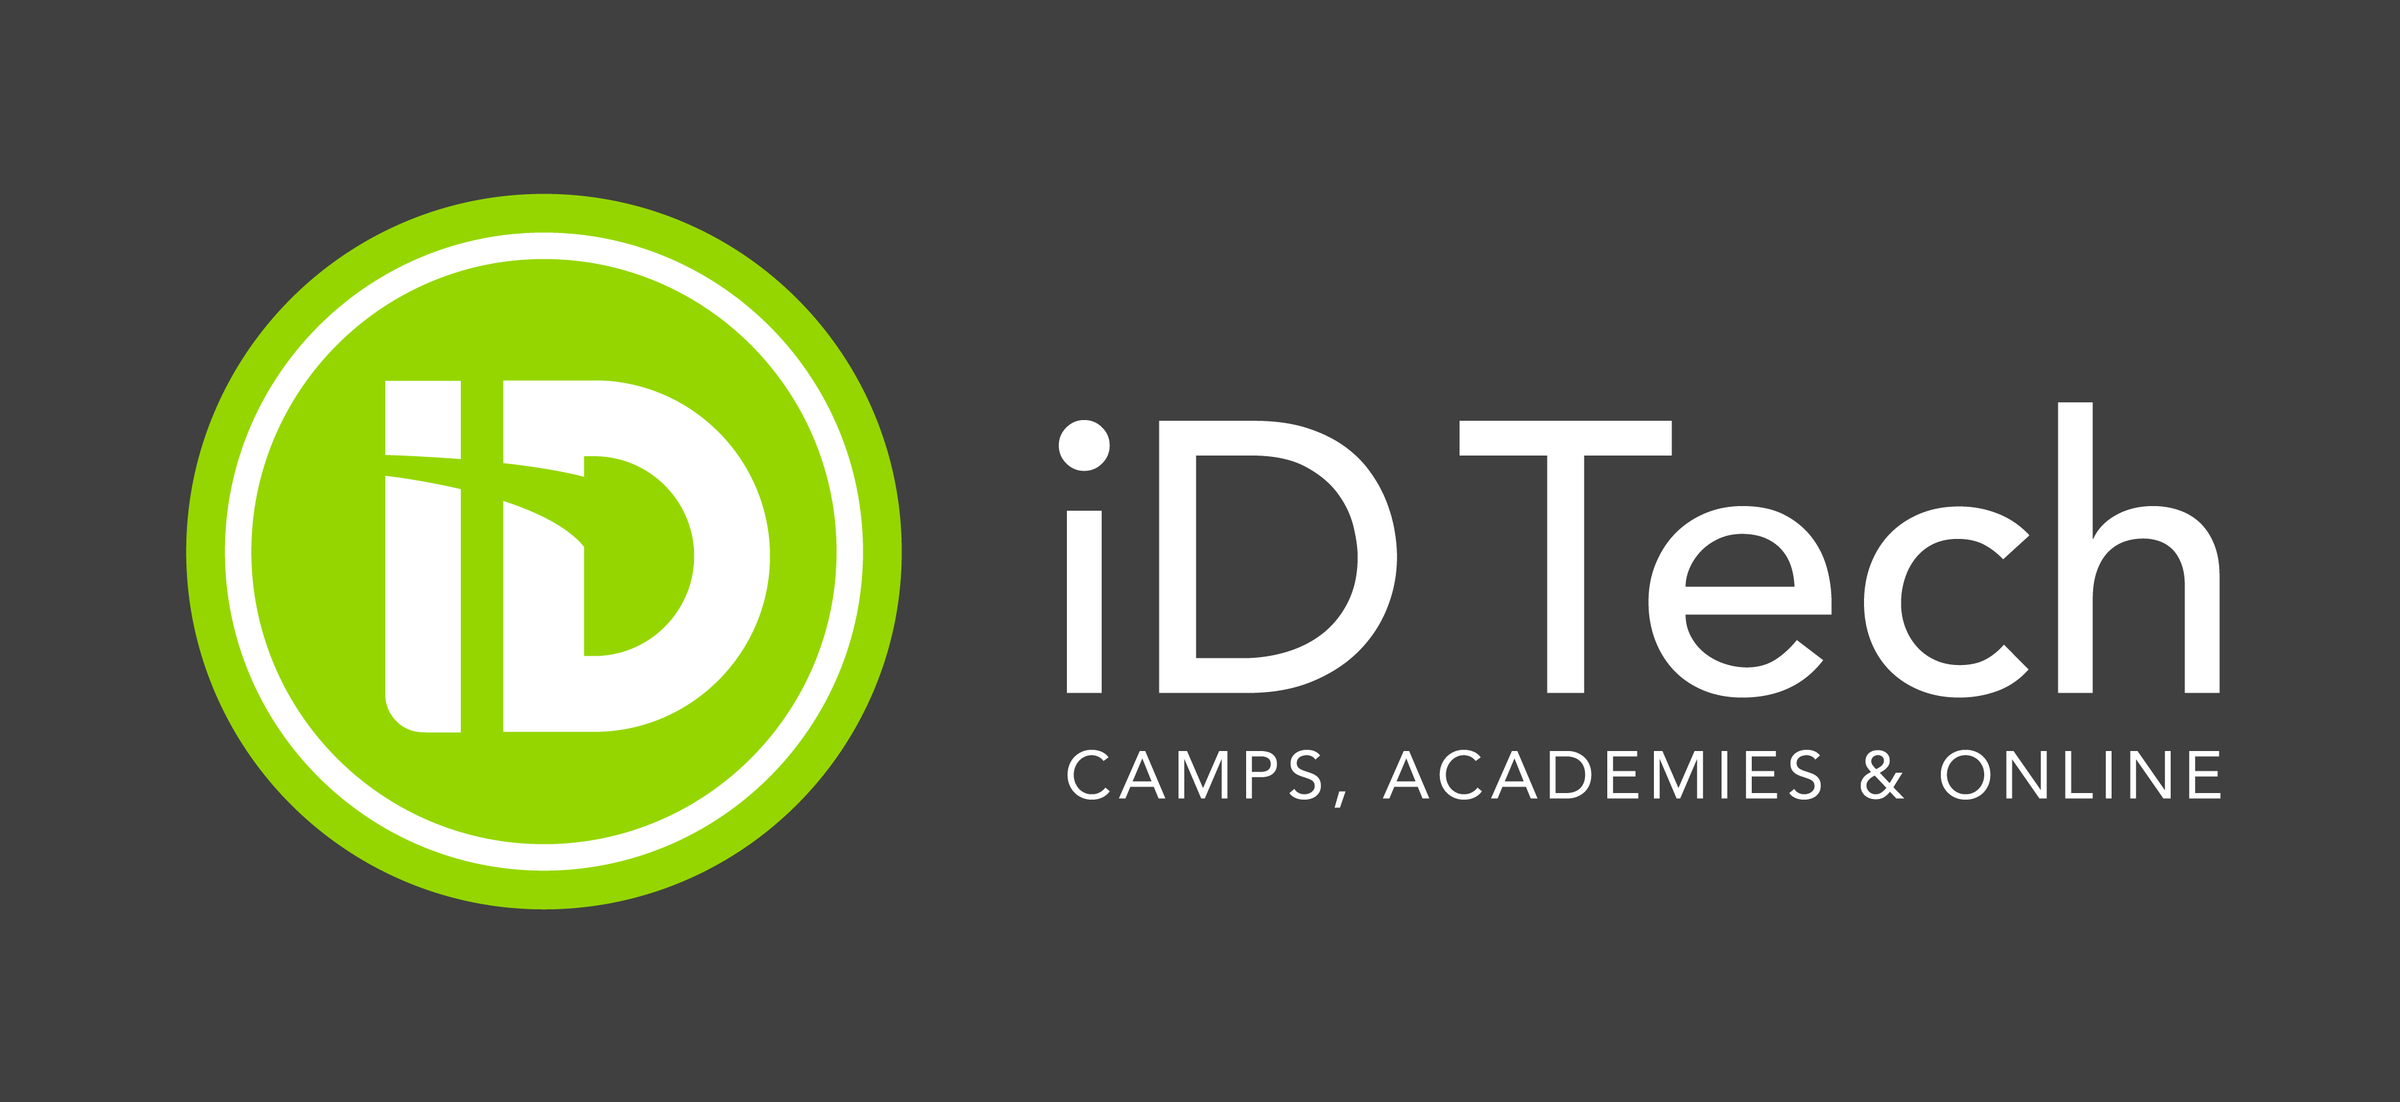 iD Tech Camps: #1 in STEM Education - Held at St. Edward's University